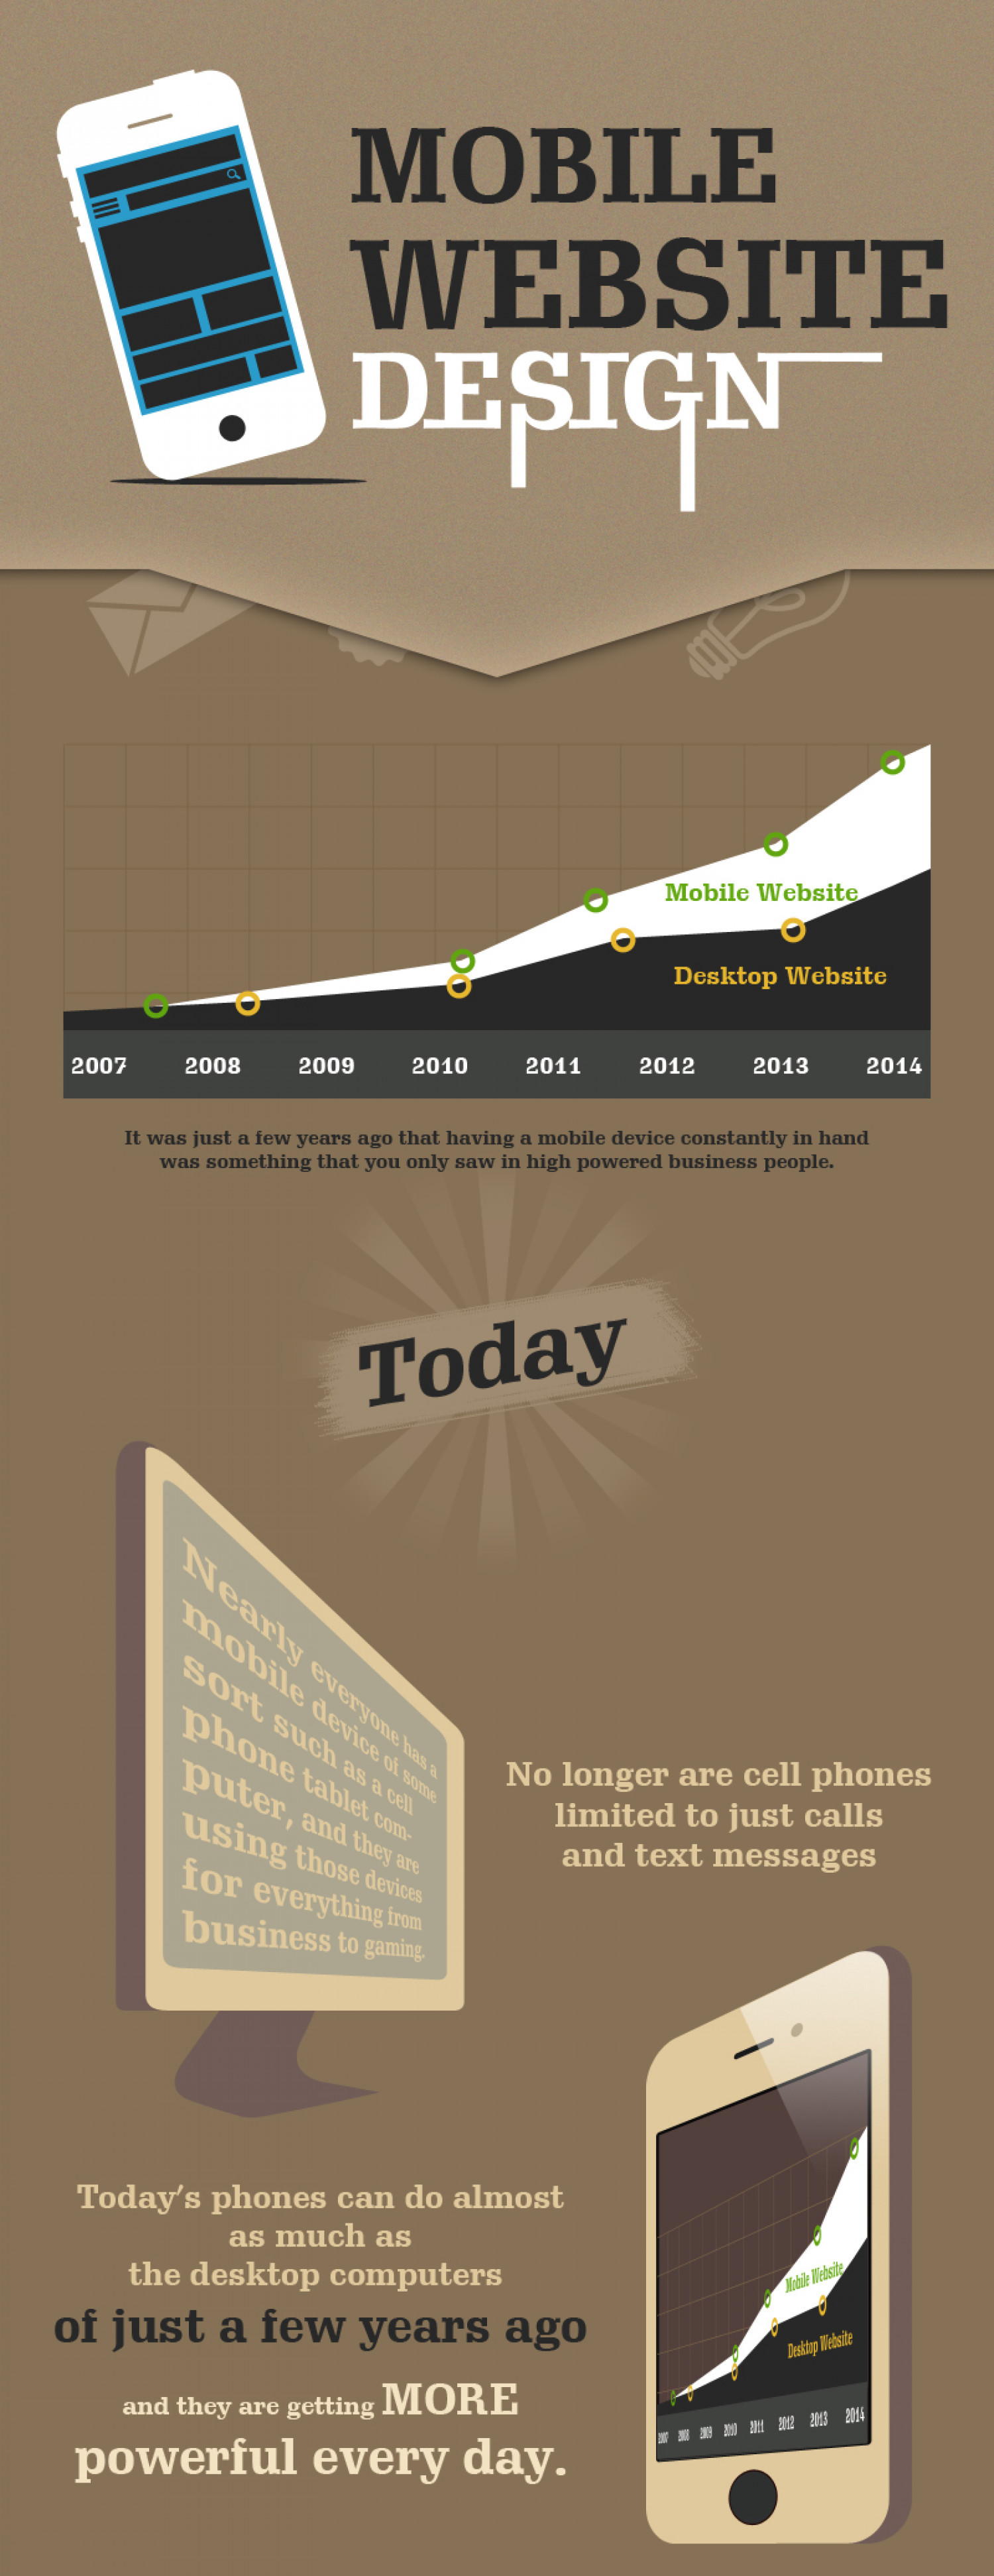 Mobile Website Design Infographic